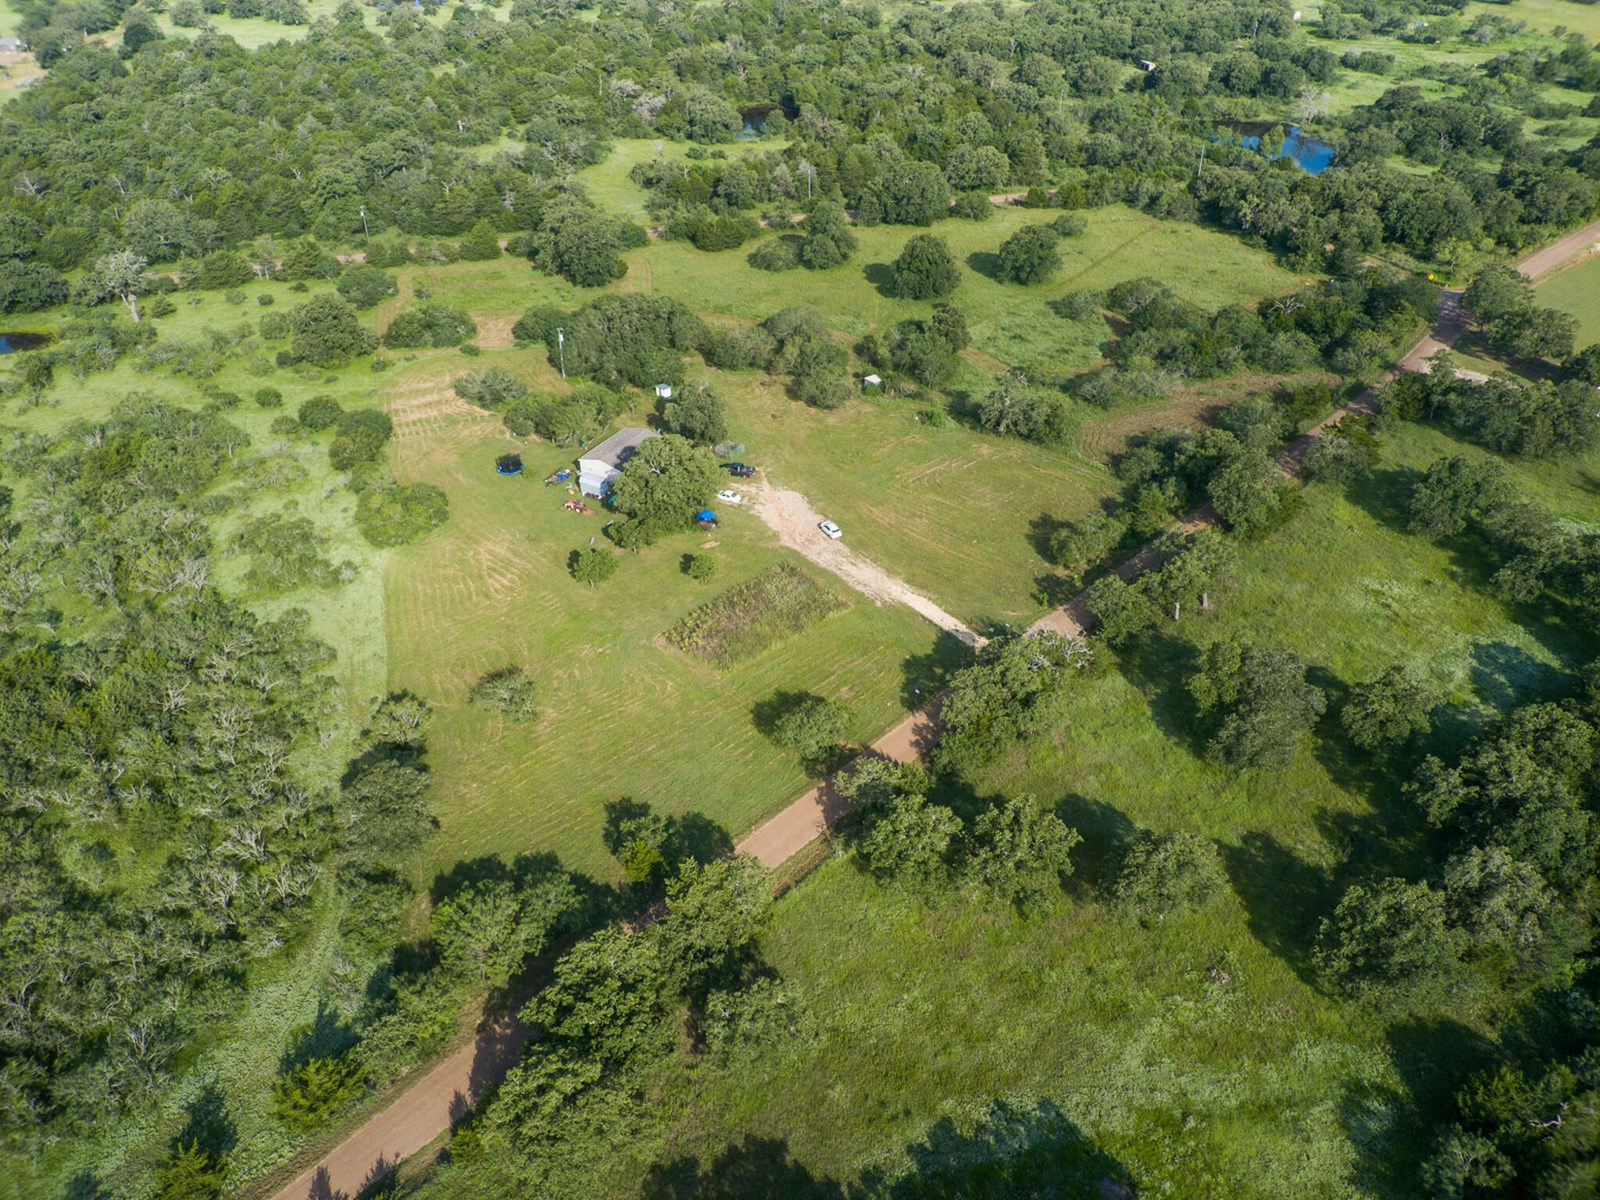 Country Home with acreage for sale near Bastrop Texas